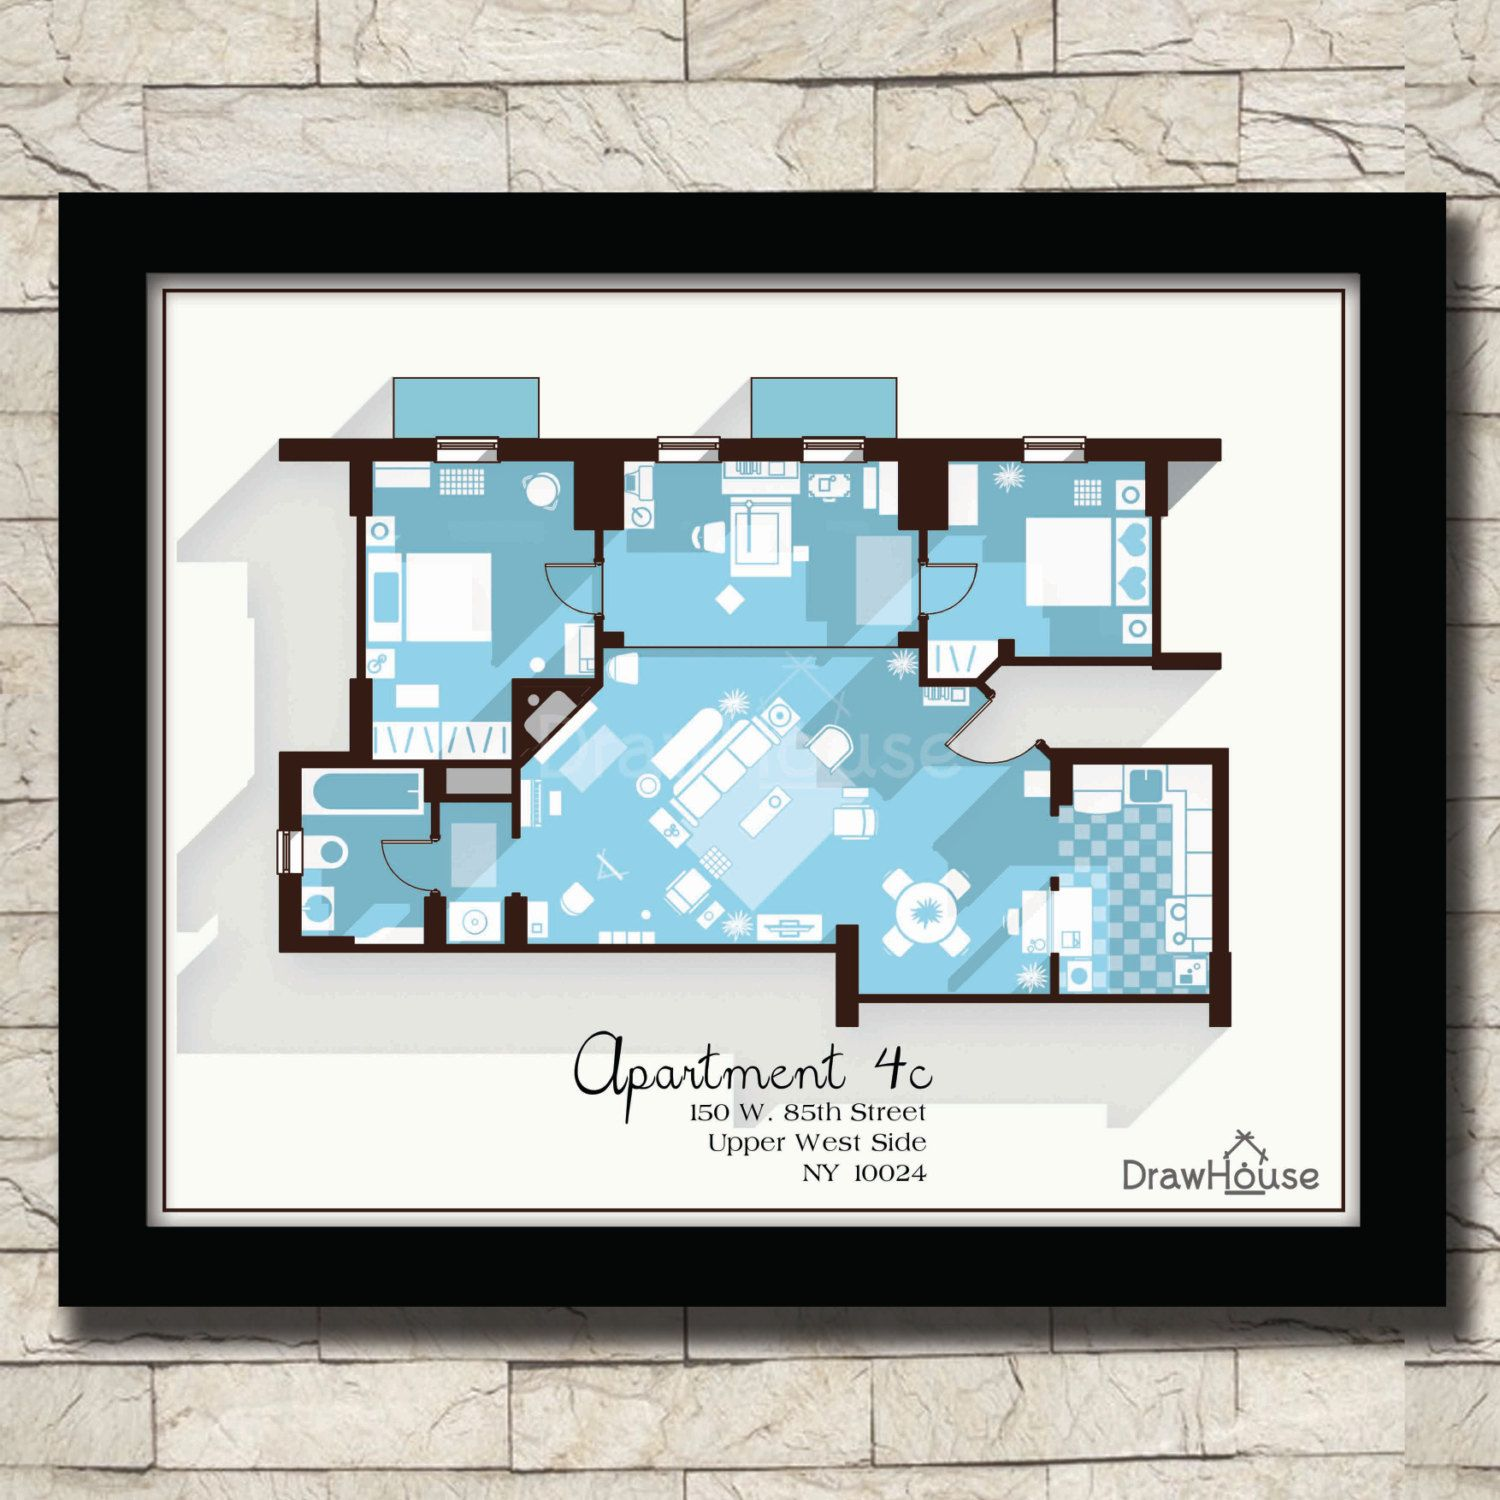 How i met your mother apartment famous tv show floor plan how i met your mother apartment famous tv show floor plan blueprint poster art malvernweather Image collections